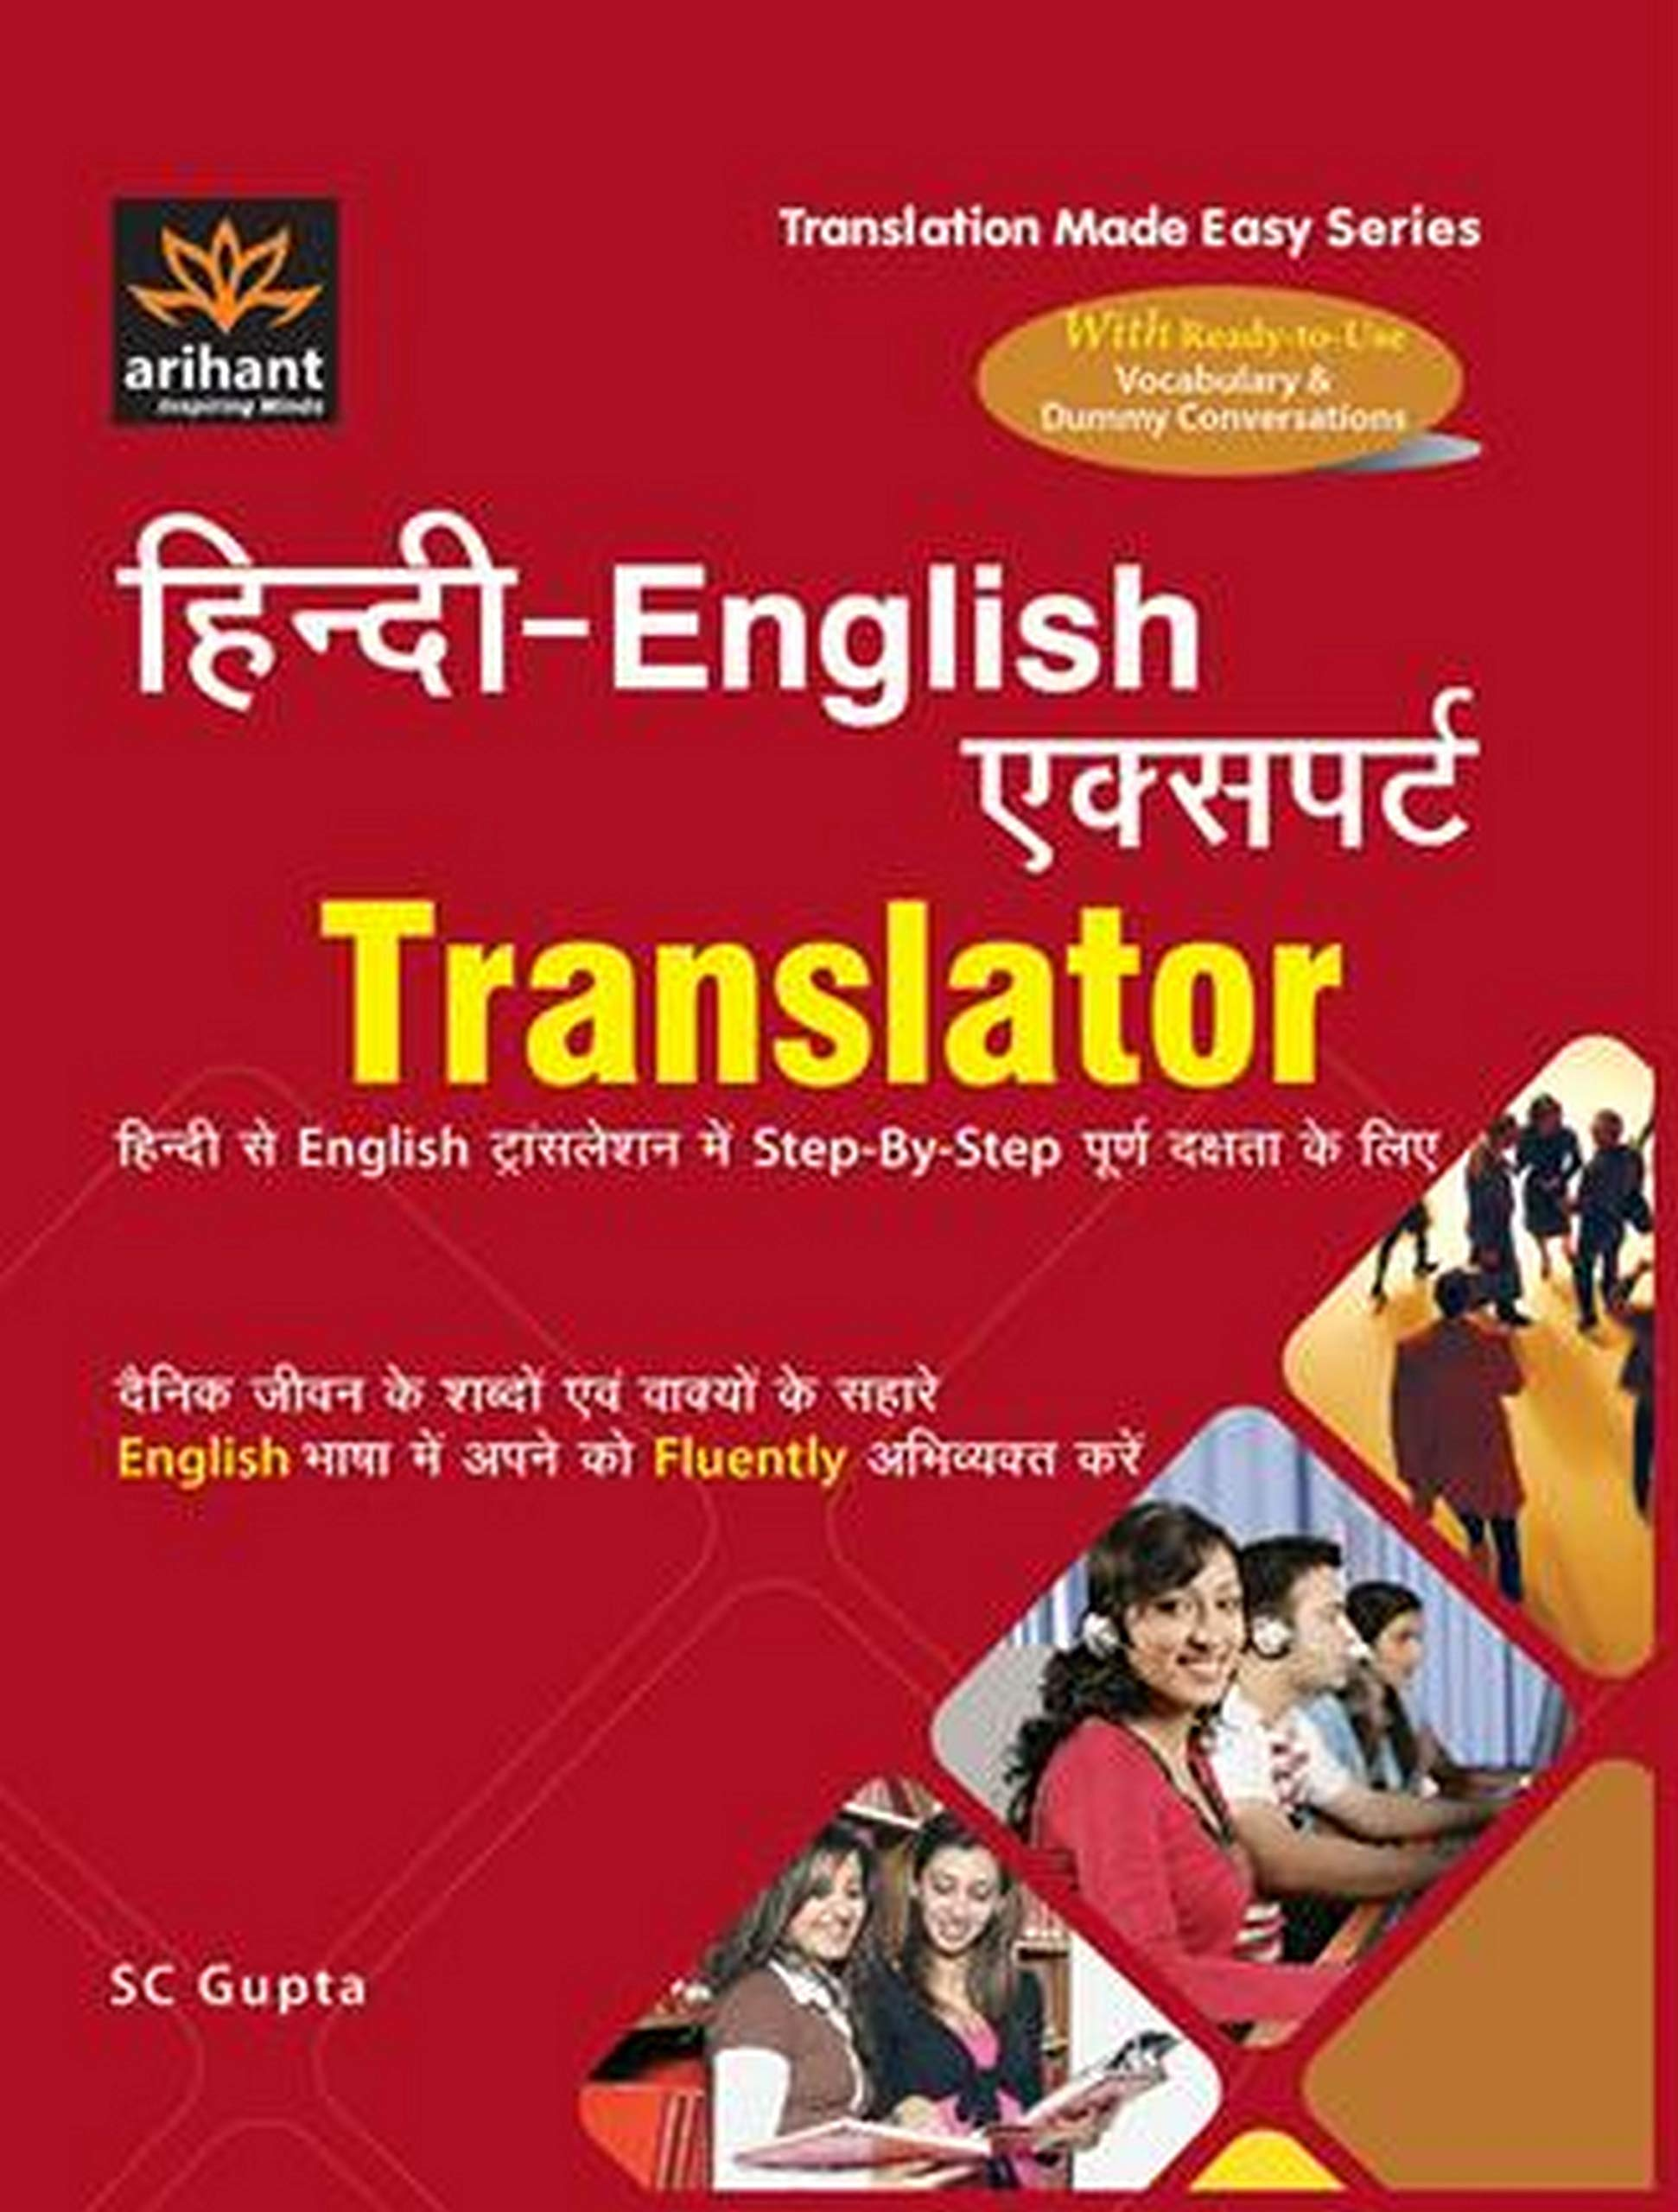 Buy Hindi English Expert Translator Hindi Se English Translation Mai Step By Step Purn Dakshta Ke Liye Book Online At Low Prices In India Hindi English Expert Translator Hindi Se English Translation Mai Step By Step Purn